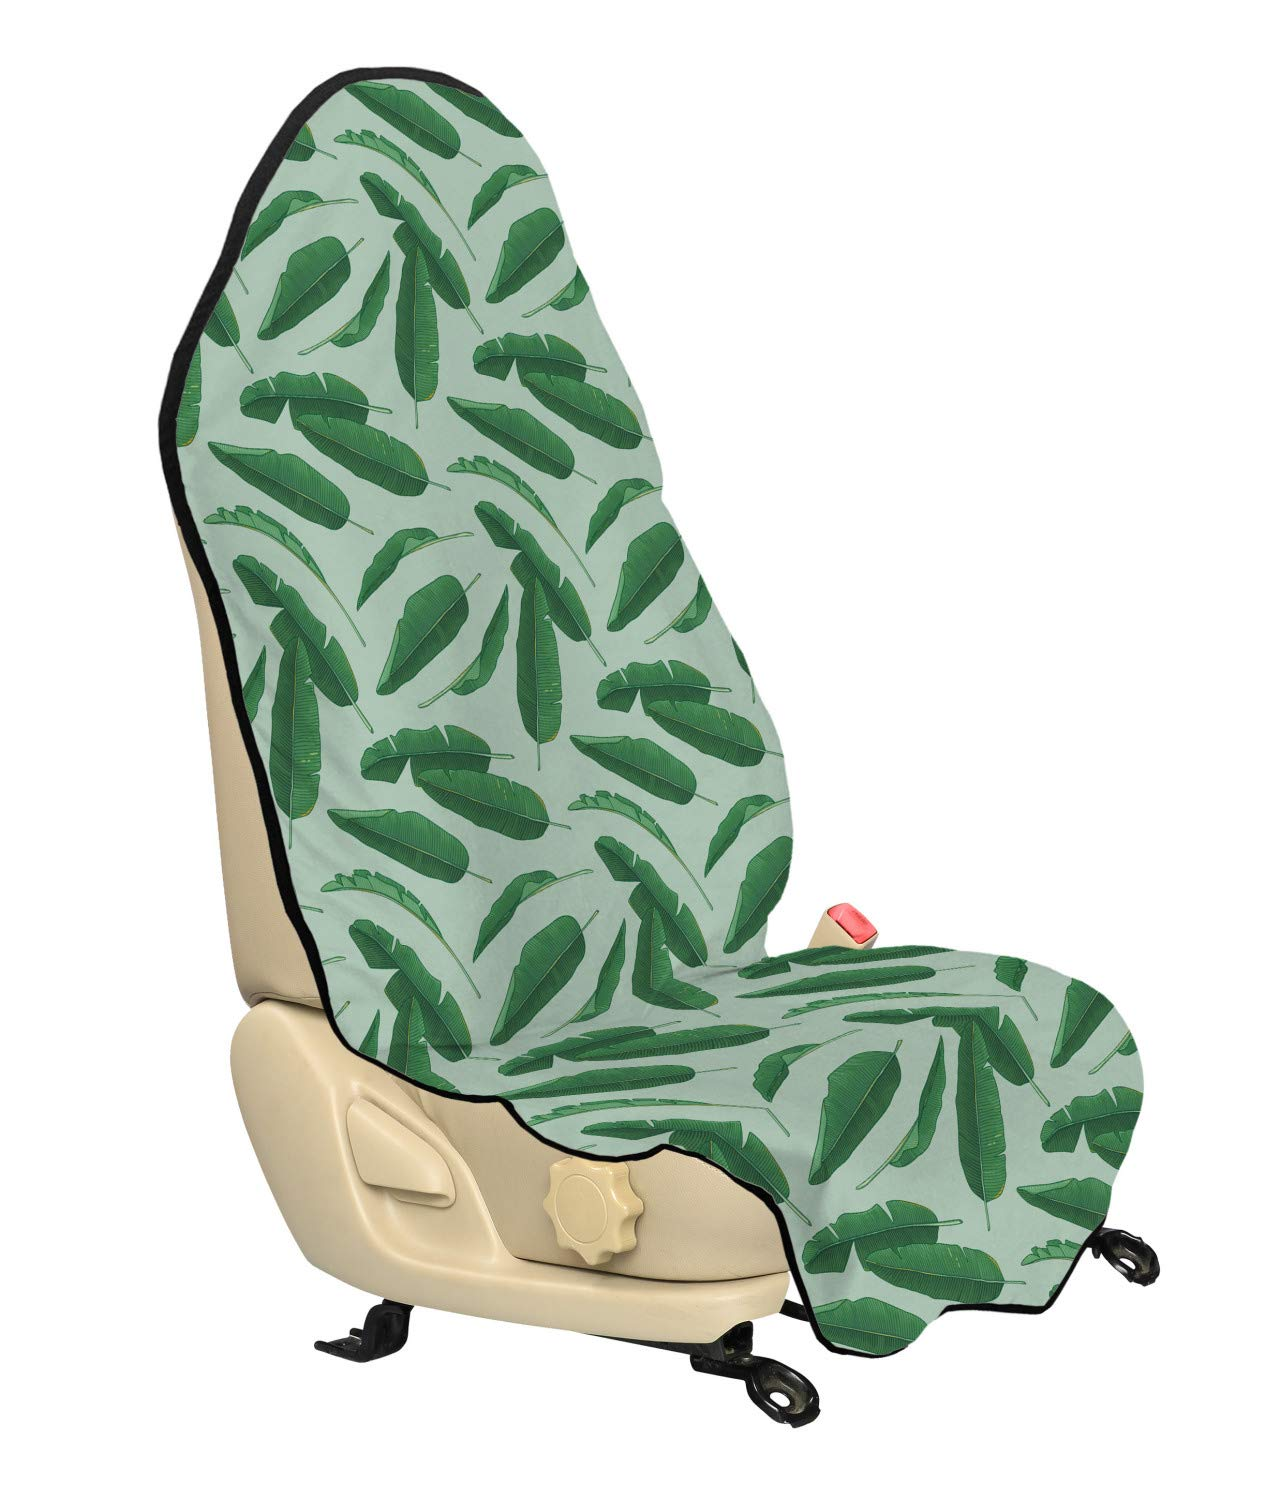 Multicolor Ambesonne Dragonfly Car Seat Cover Artistic Pattern with Dragonflies and Green Olive Branches Mediterranean Nature Car and Truck Seat Cover Protector with Nonslip Backing Universal Fit